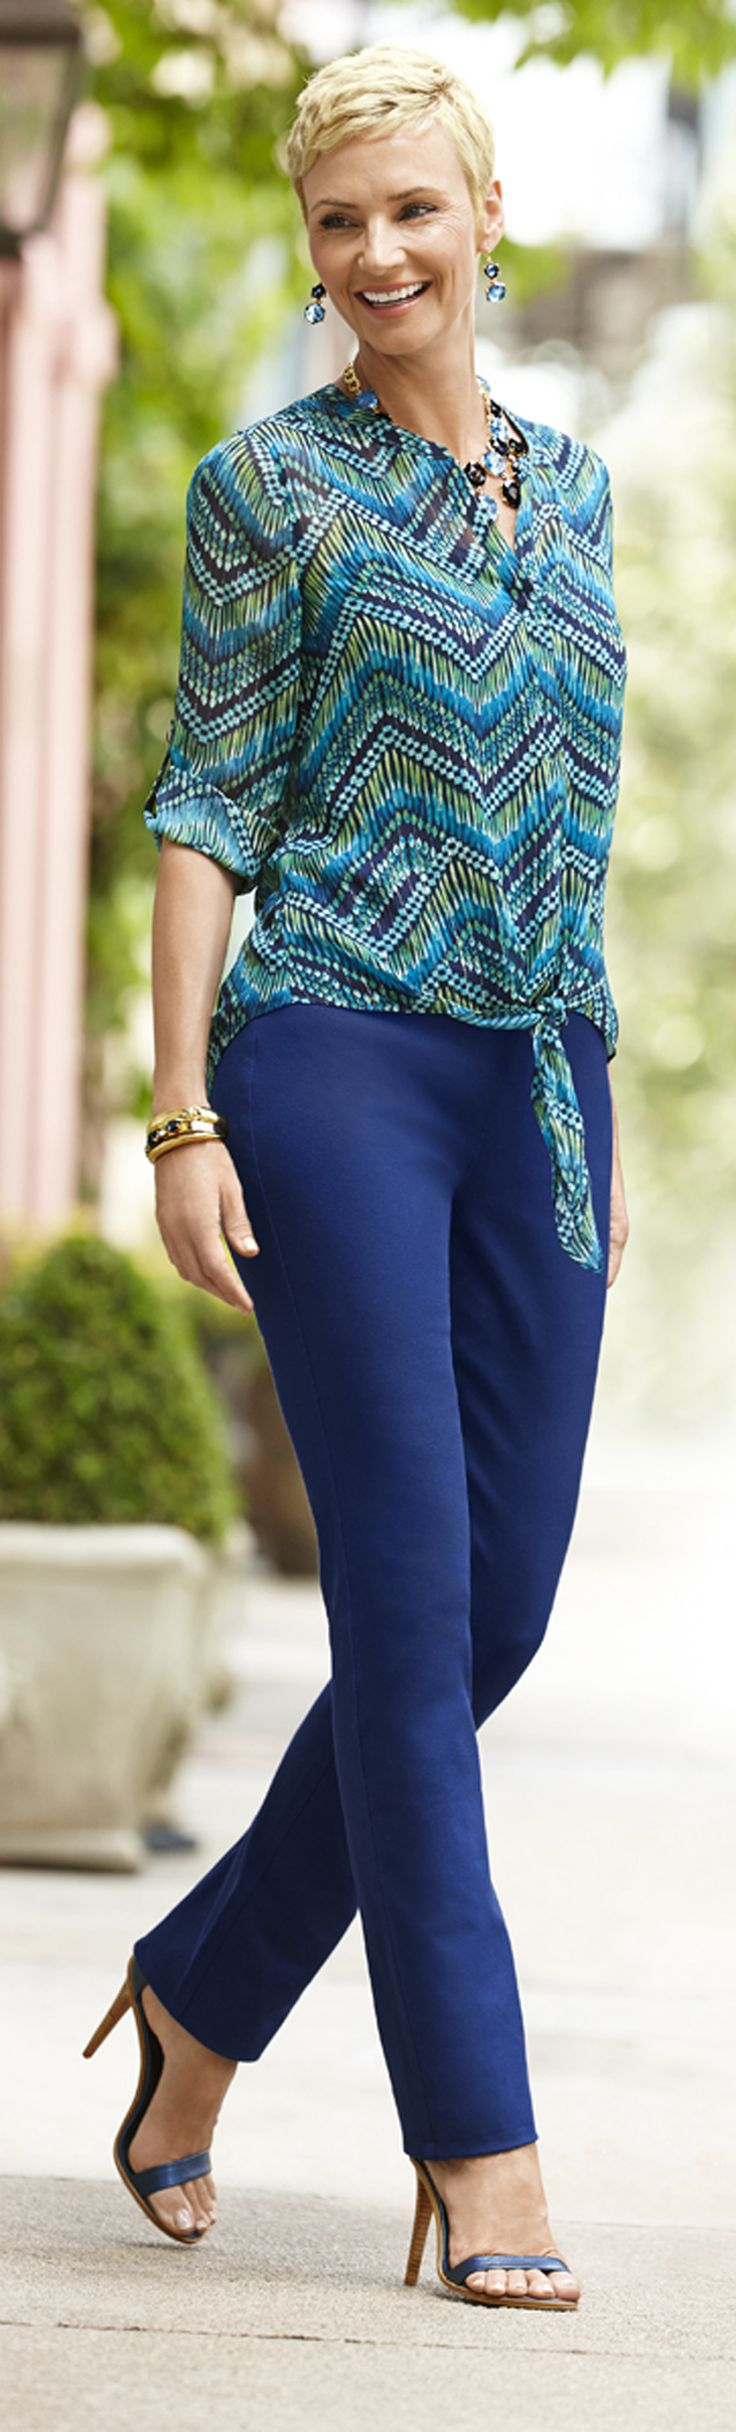 Chico's Stripe Textures Emma Top and So Slimming Madison Pant.